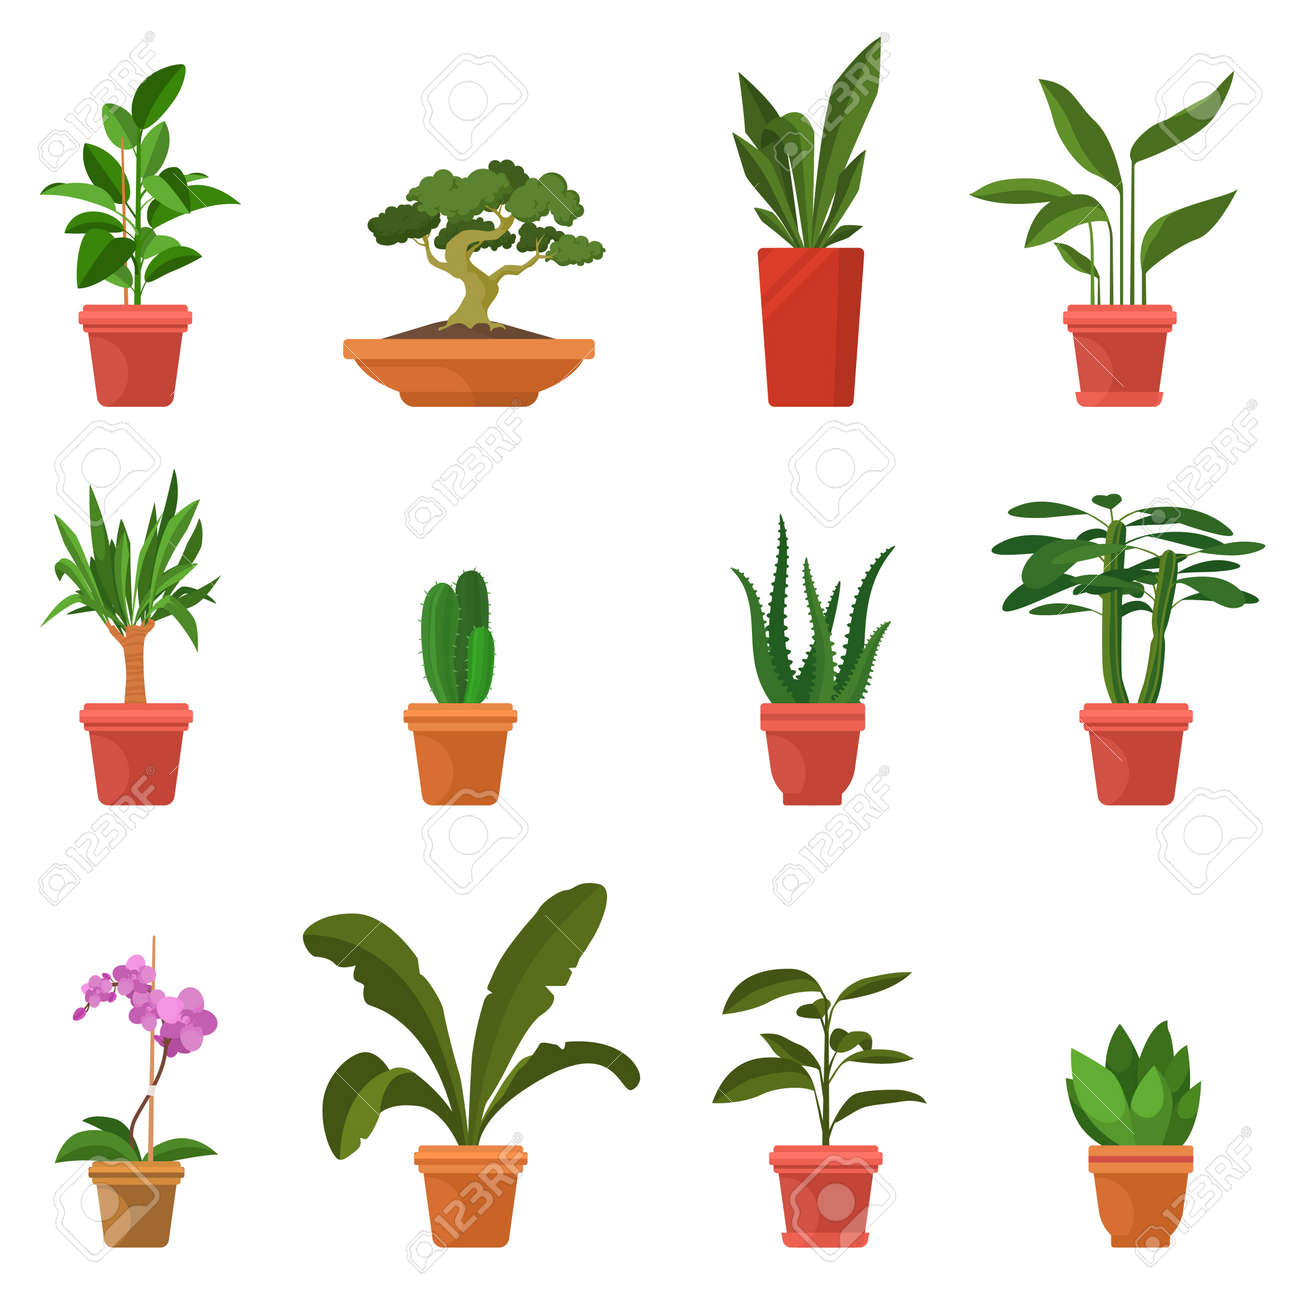 House Plants Vector Illustration Set Of Colorful Indoor Plants Royalty Free Cliparts Vectors And Stock Illustration Image 102582172